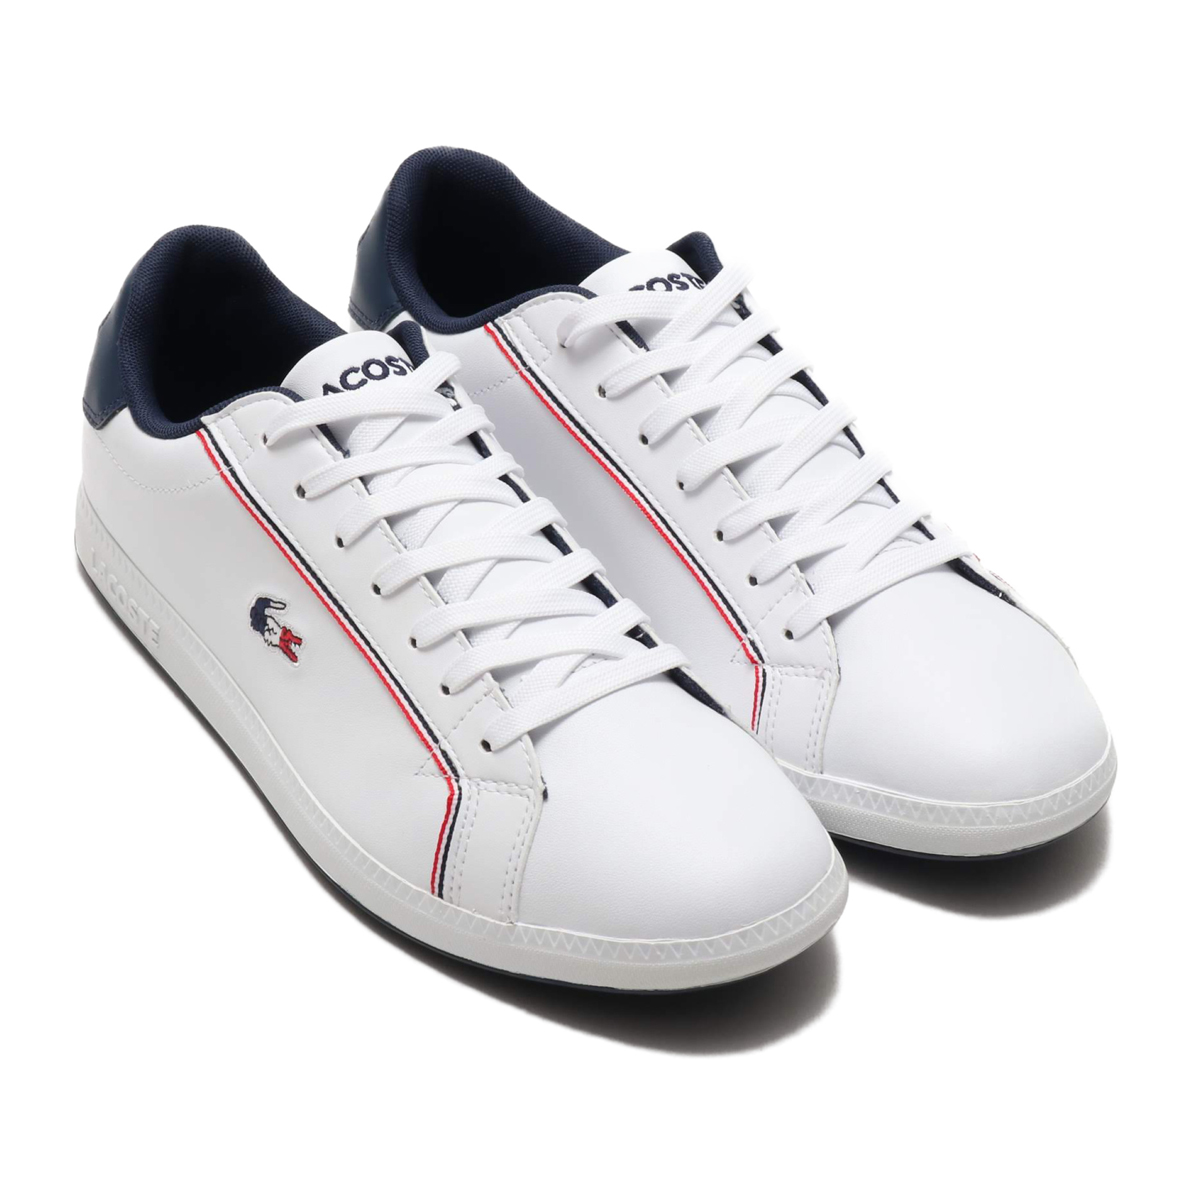 LACOSTE GRADUATE 119 3 (ラコステ グラジュエート 119 3)WHT/NVY/RED【メンズ スニーカー】19SP-I